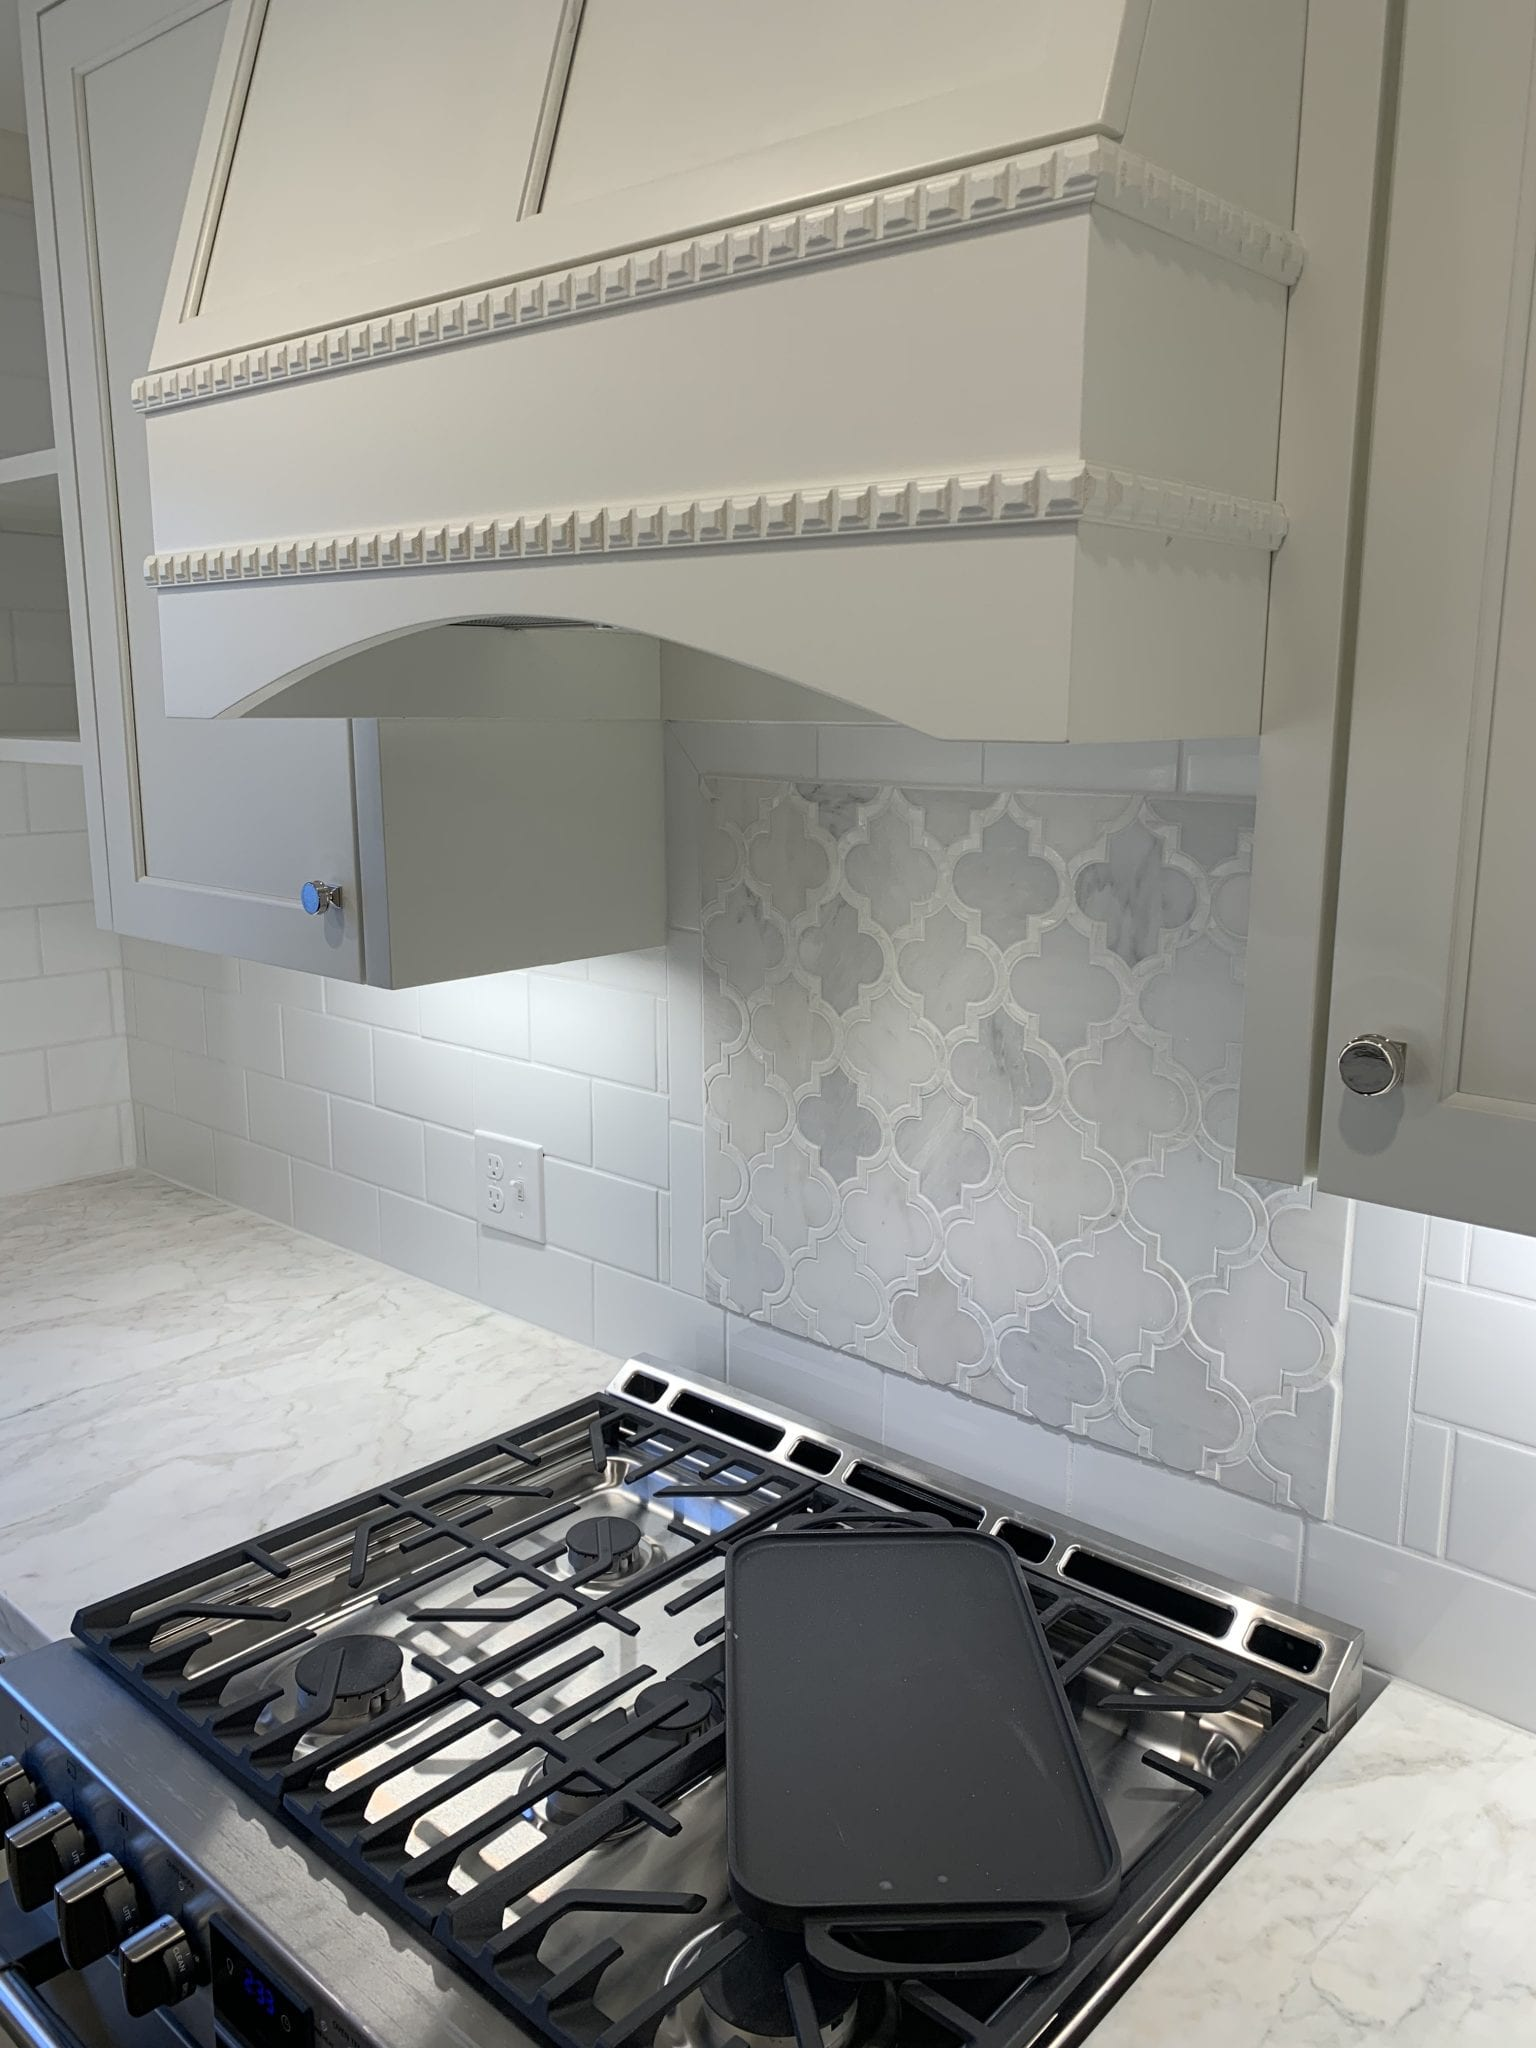 close up of stove with white accented backsplash